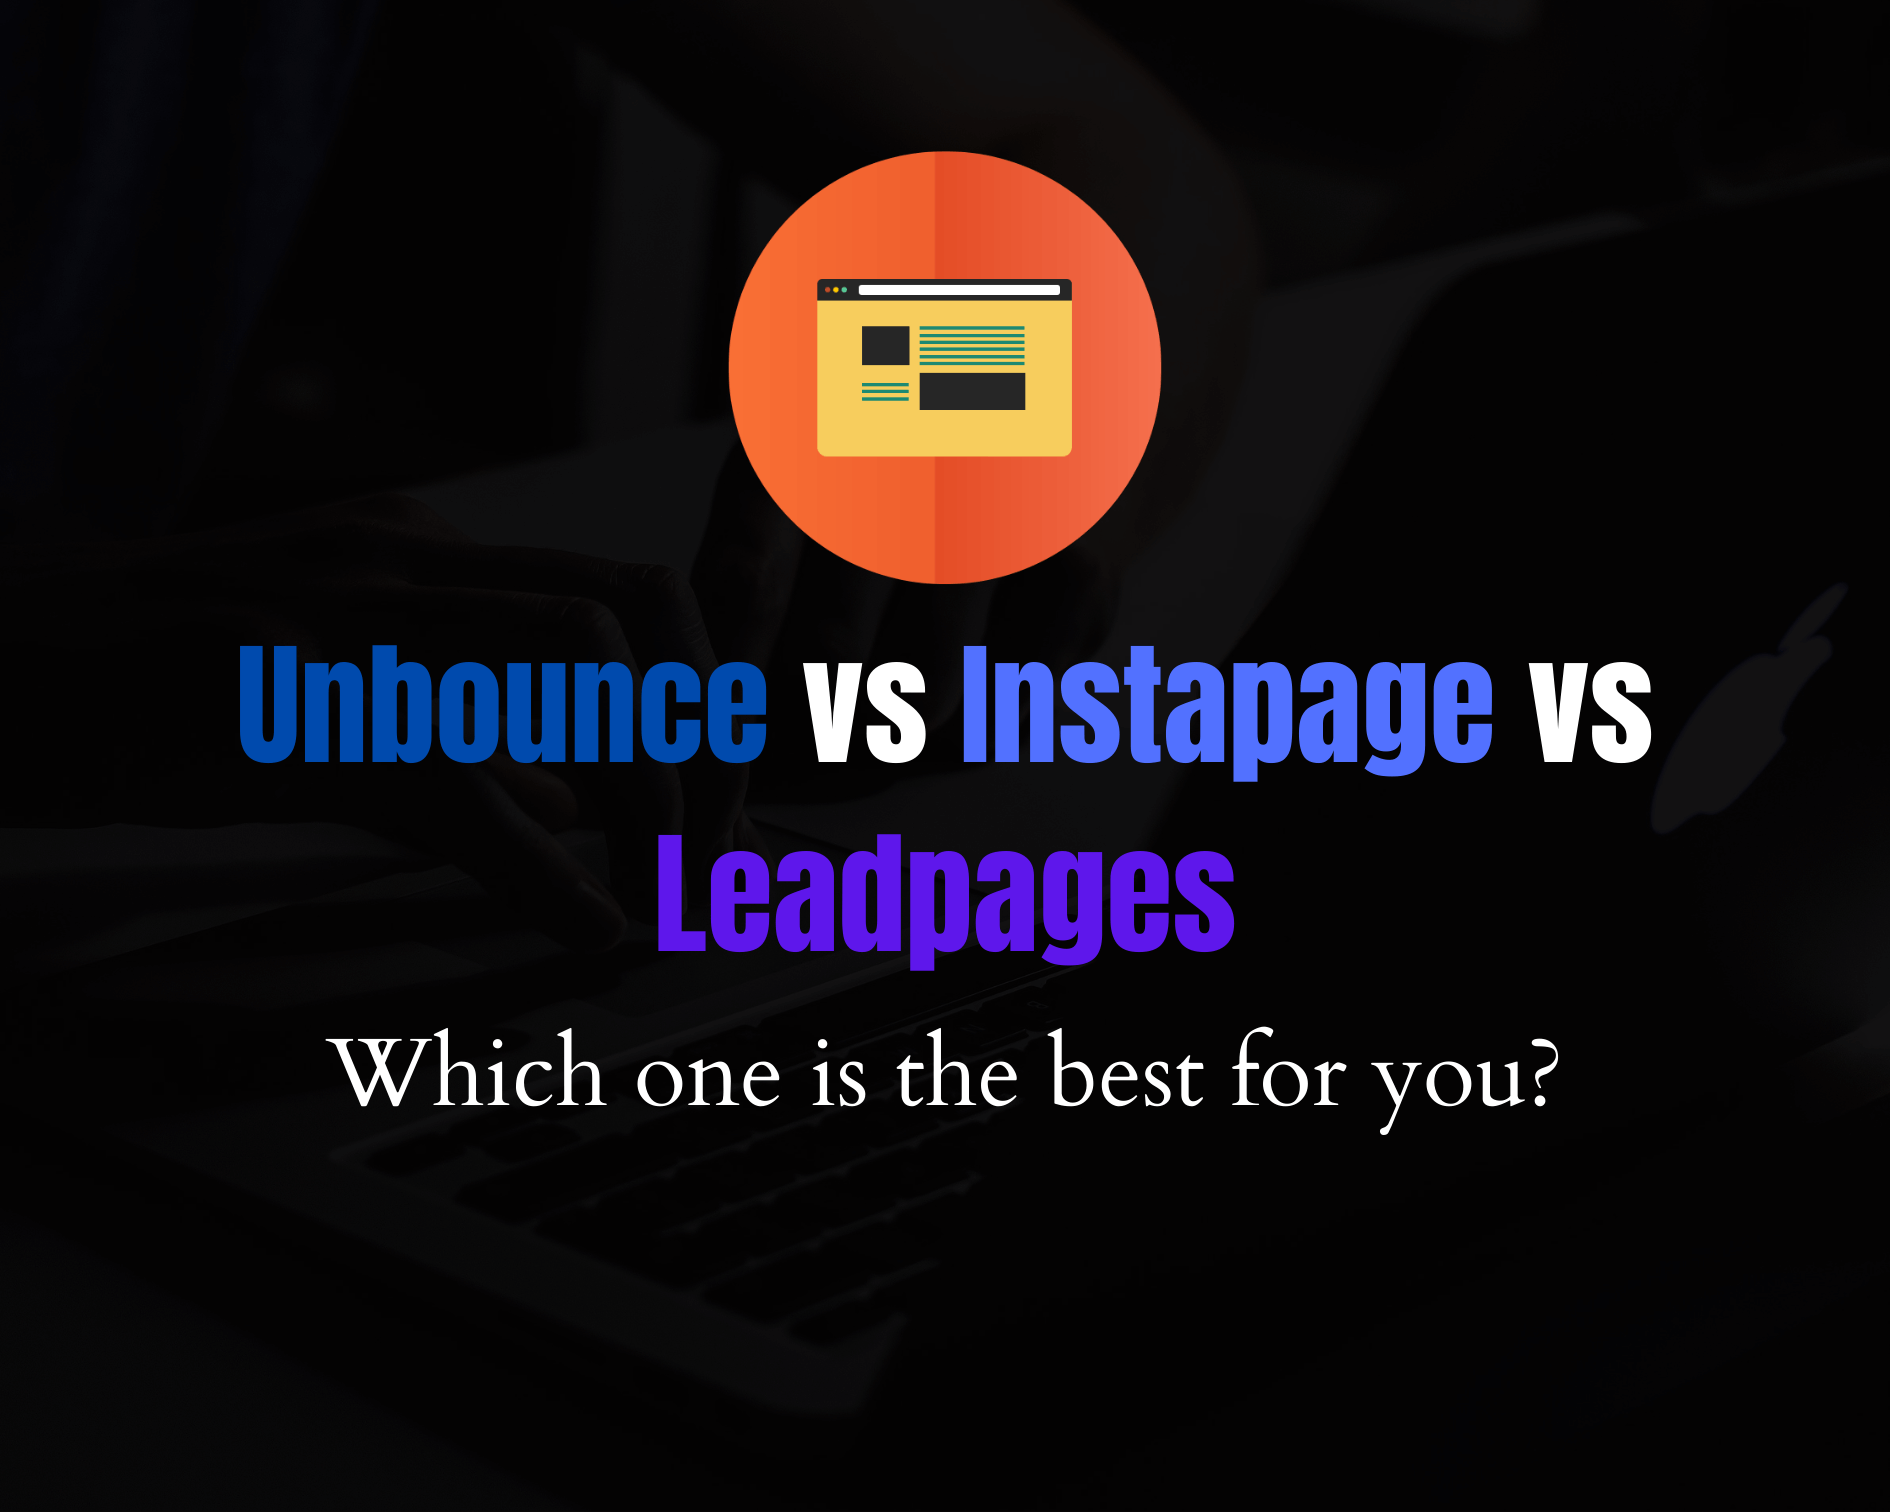 Unbounce vs Instapage vs LeadPages: Which one is the best in 2021?